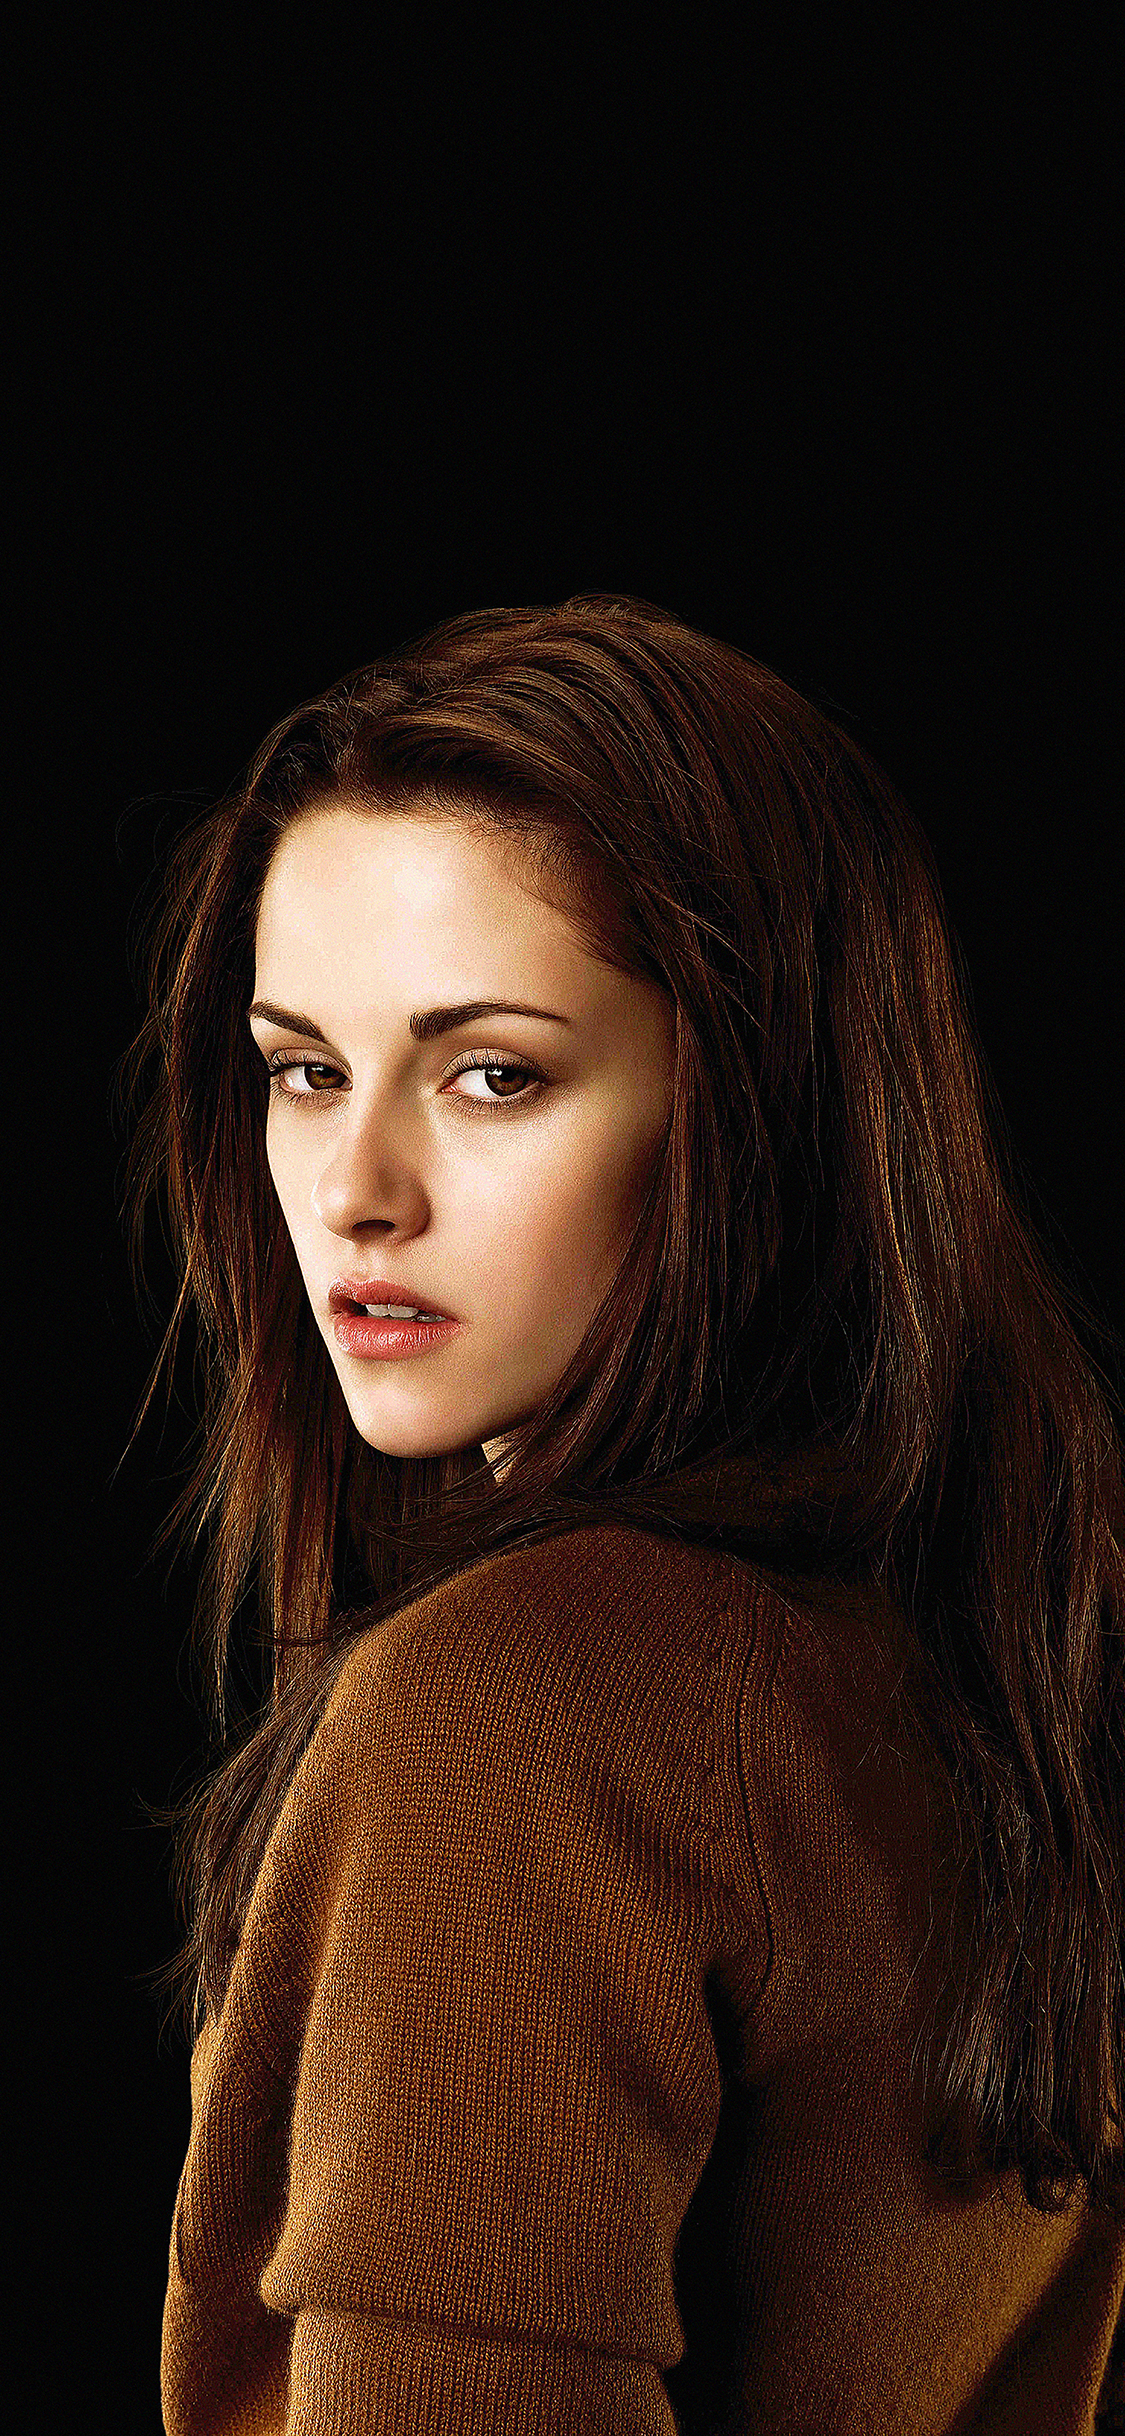 iPhoneXpapers.com-Apple-iPhone-wallpaper-hb17-wallpaper-kristen-stewart-twilight-bella-wwan-film